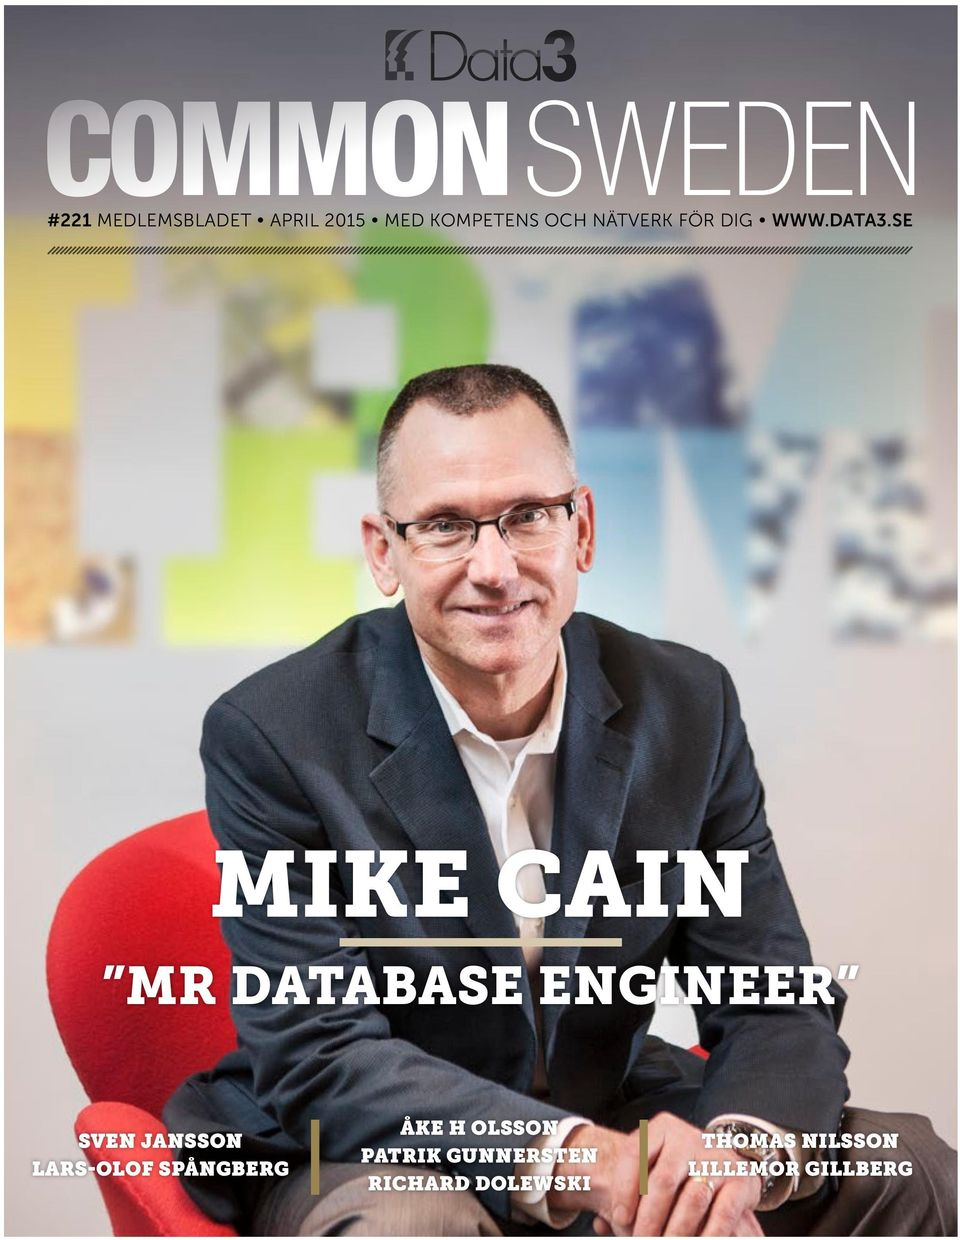 SE MIKE CAIN MR DATABASE ENGINEER SVEN JANSSON